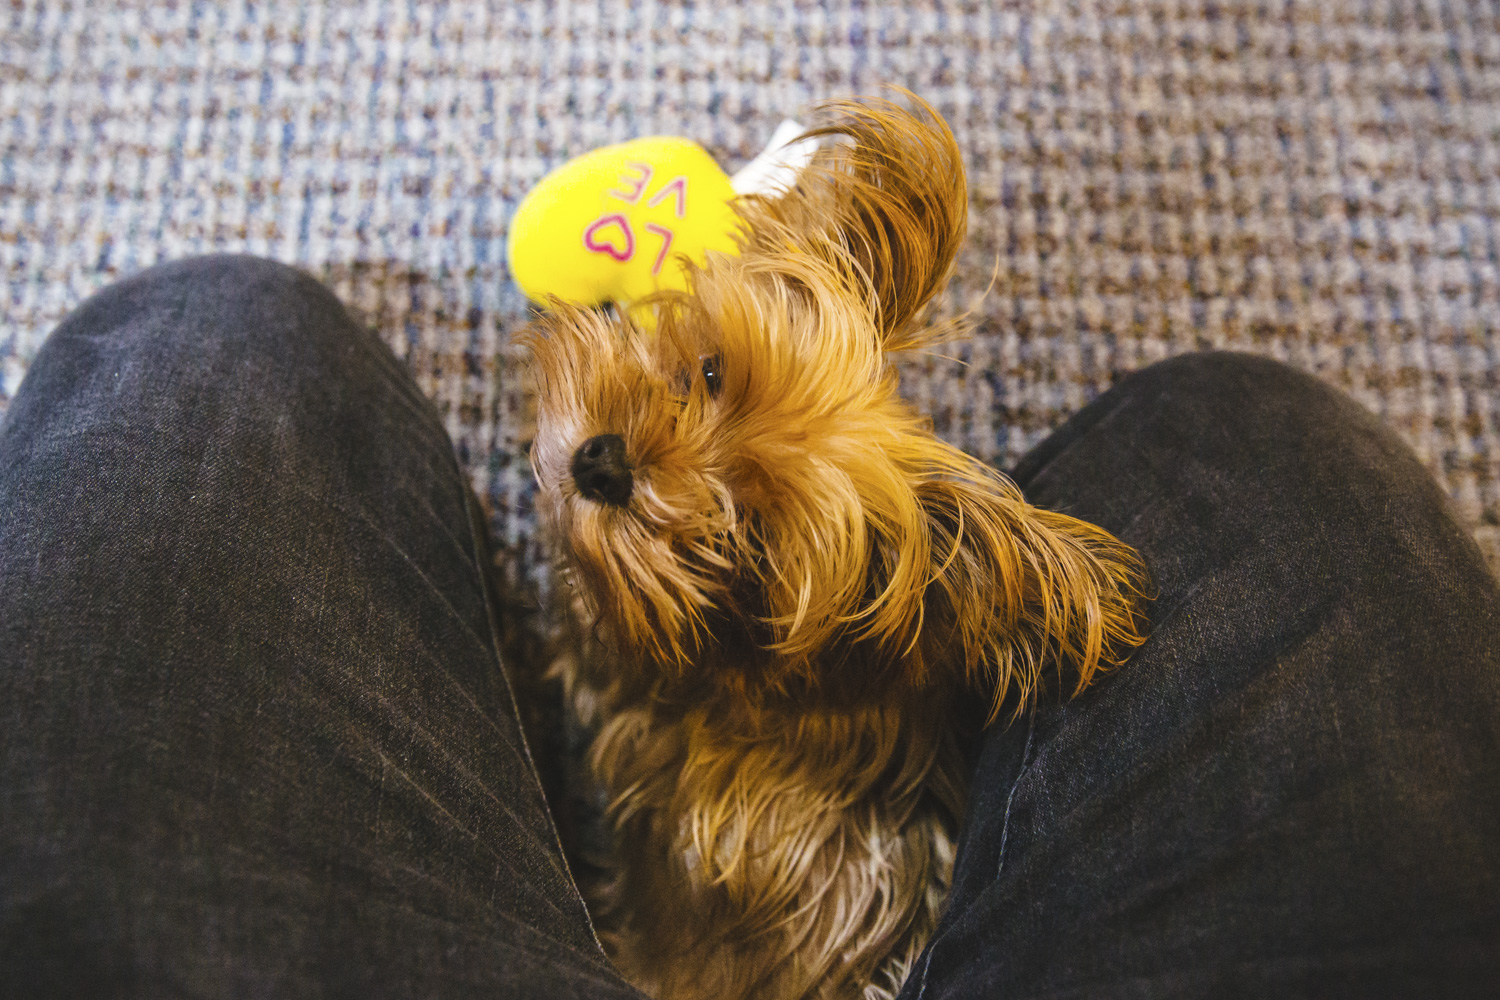 Meet Tico! Tico is short for Tiffany & Co., how cute is that. The Teacup Yorki is four years old and is the resident guard dog at Seattle Gold Grills but is currently on long vacation, exploring the city of Seattle and watching Netflix all. day. long. Tico likes $94 steaks, chicken, and company. She dislikes when her owners eat chicken and they don't give her any!{ }The Seattle RUFFined Spotlight is a weekly profile of local pets living and loving life in the PNW. If you or someone you know has a pet you'd like featured, email us at hello@seattlerefined.com or tag #SeattleRUFFined and your furbaby could be the next spotlighted! (Image: Sunita Martini / Seattle Refined).{ }